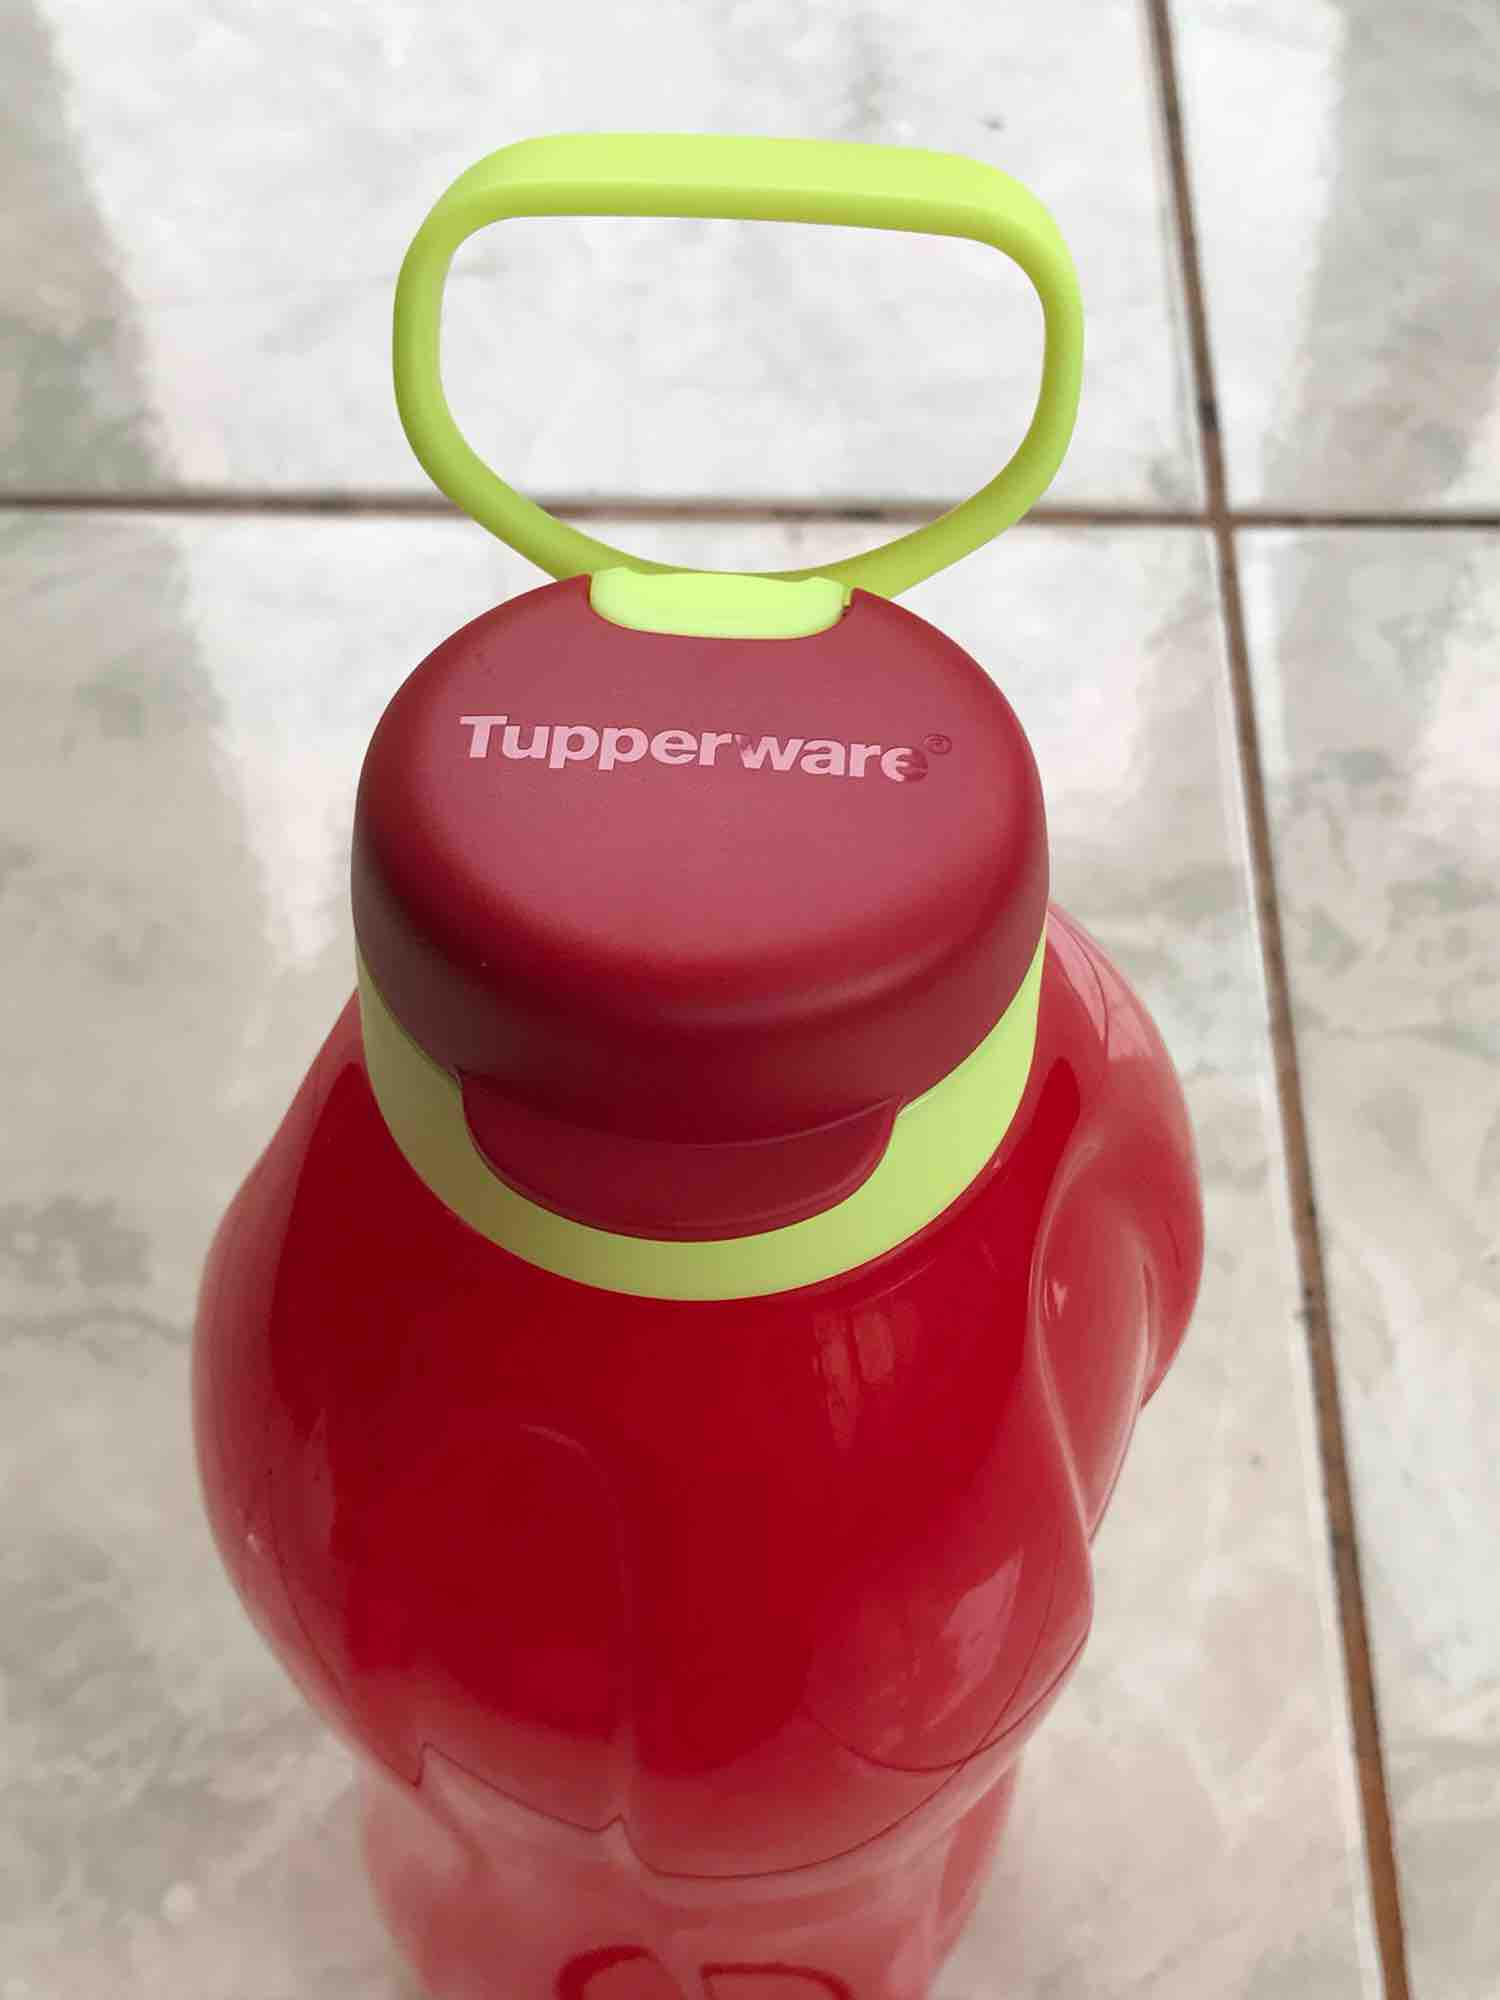 Tupperware Stand Eco Bottle Biru4 Daftar Harga Termurah Dan Richell Clear Straw Mug 200ml Merah 2liter